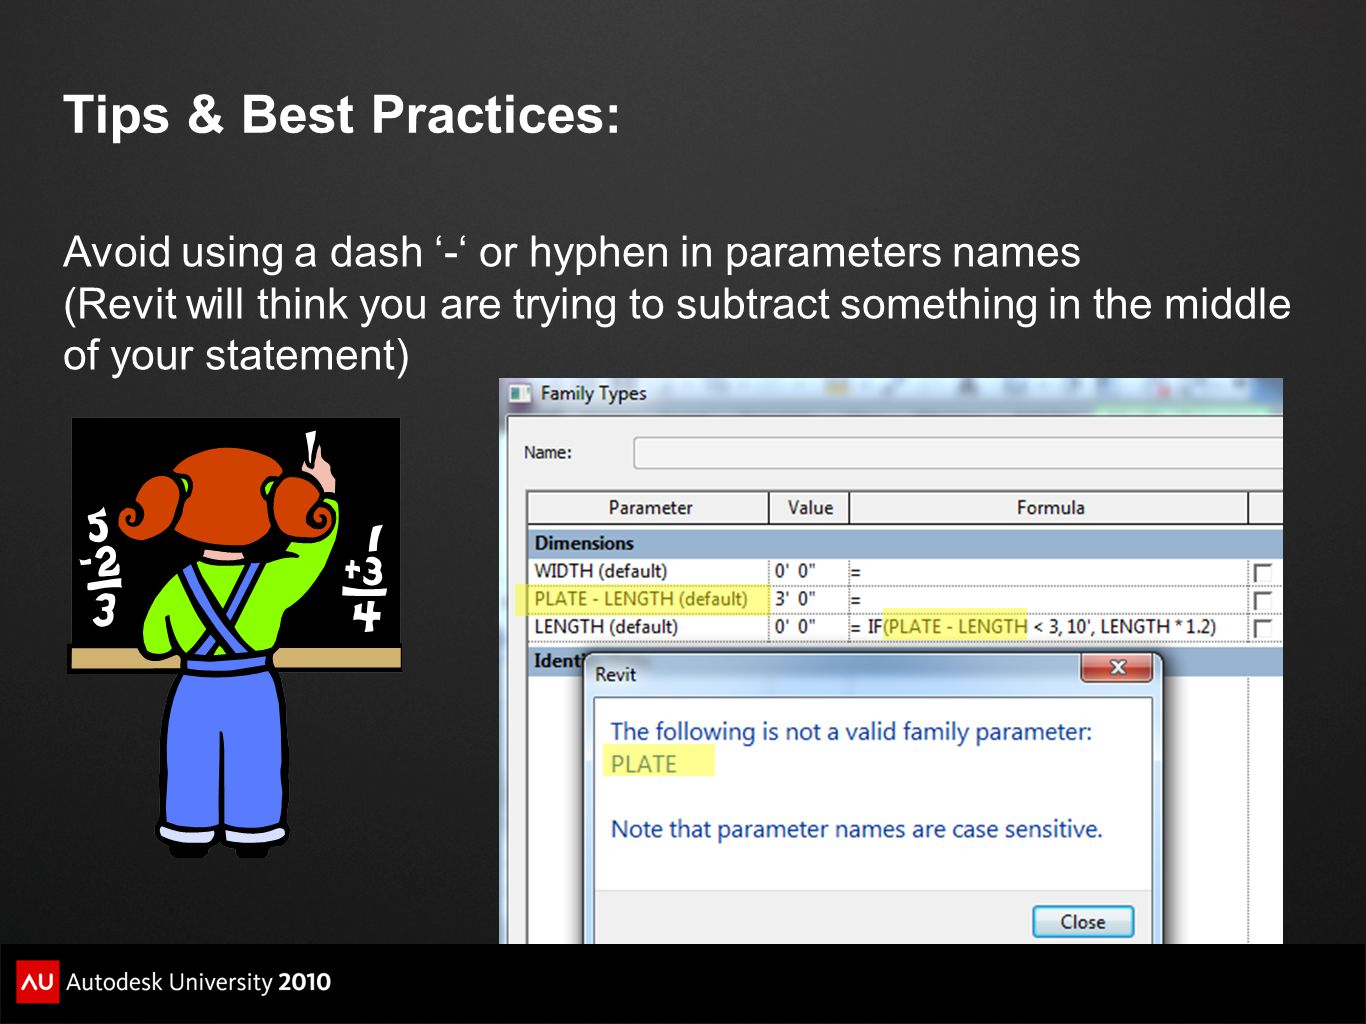 Tips & Best Practices: Avoid using a dash '-' or hyphen in parameters names.